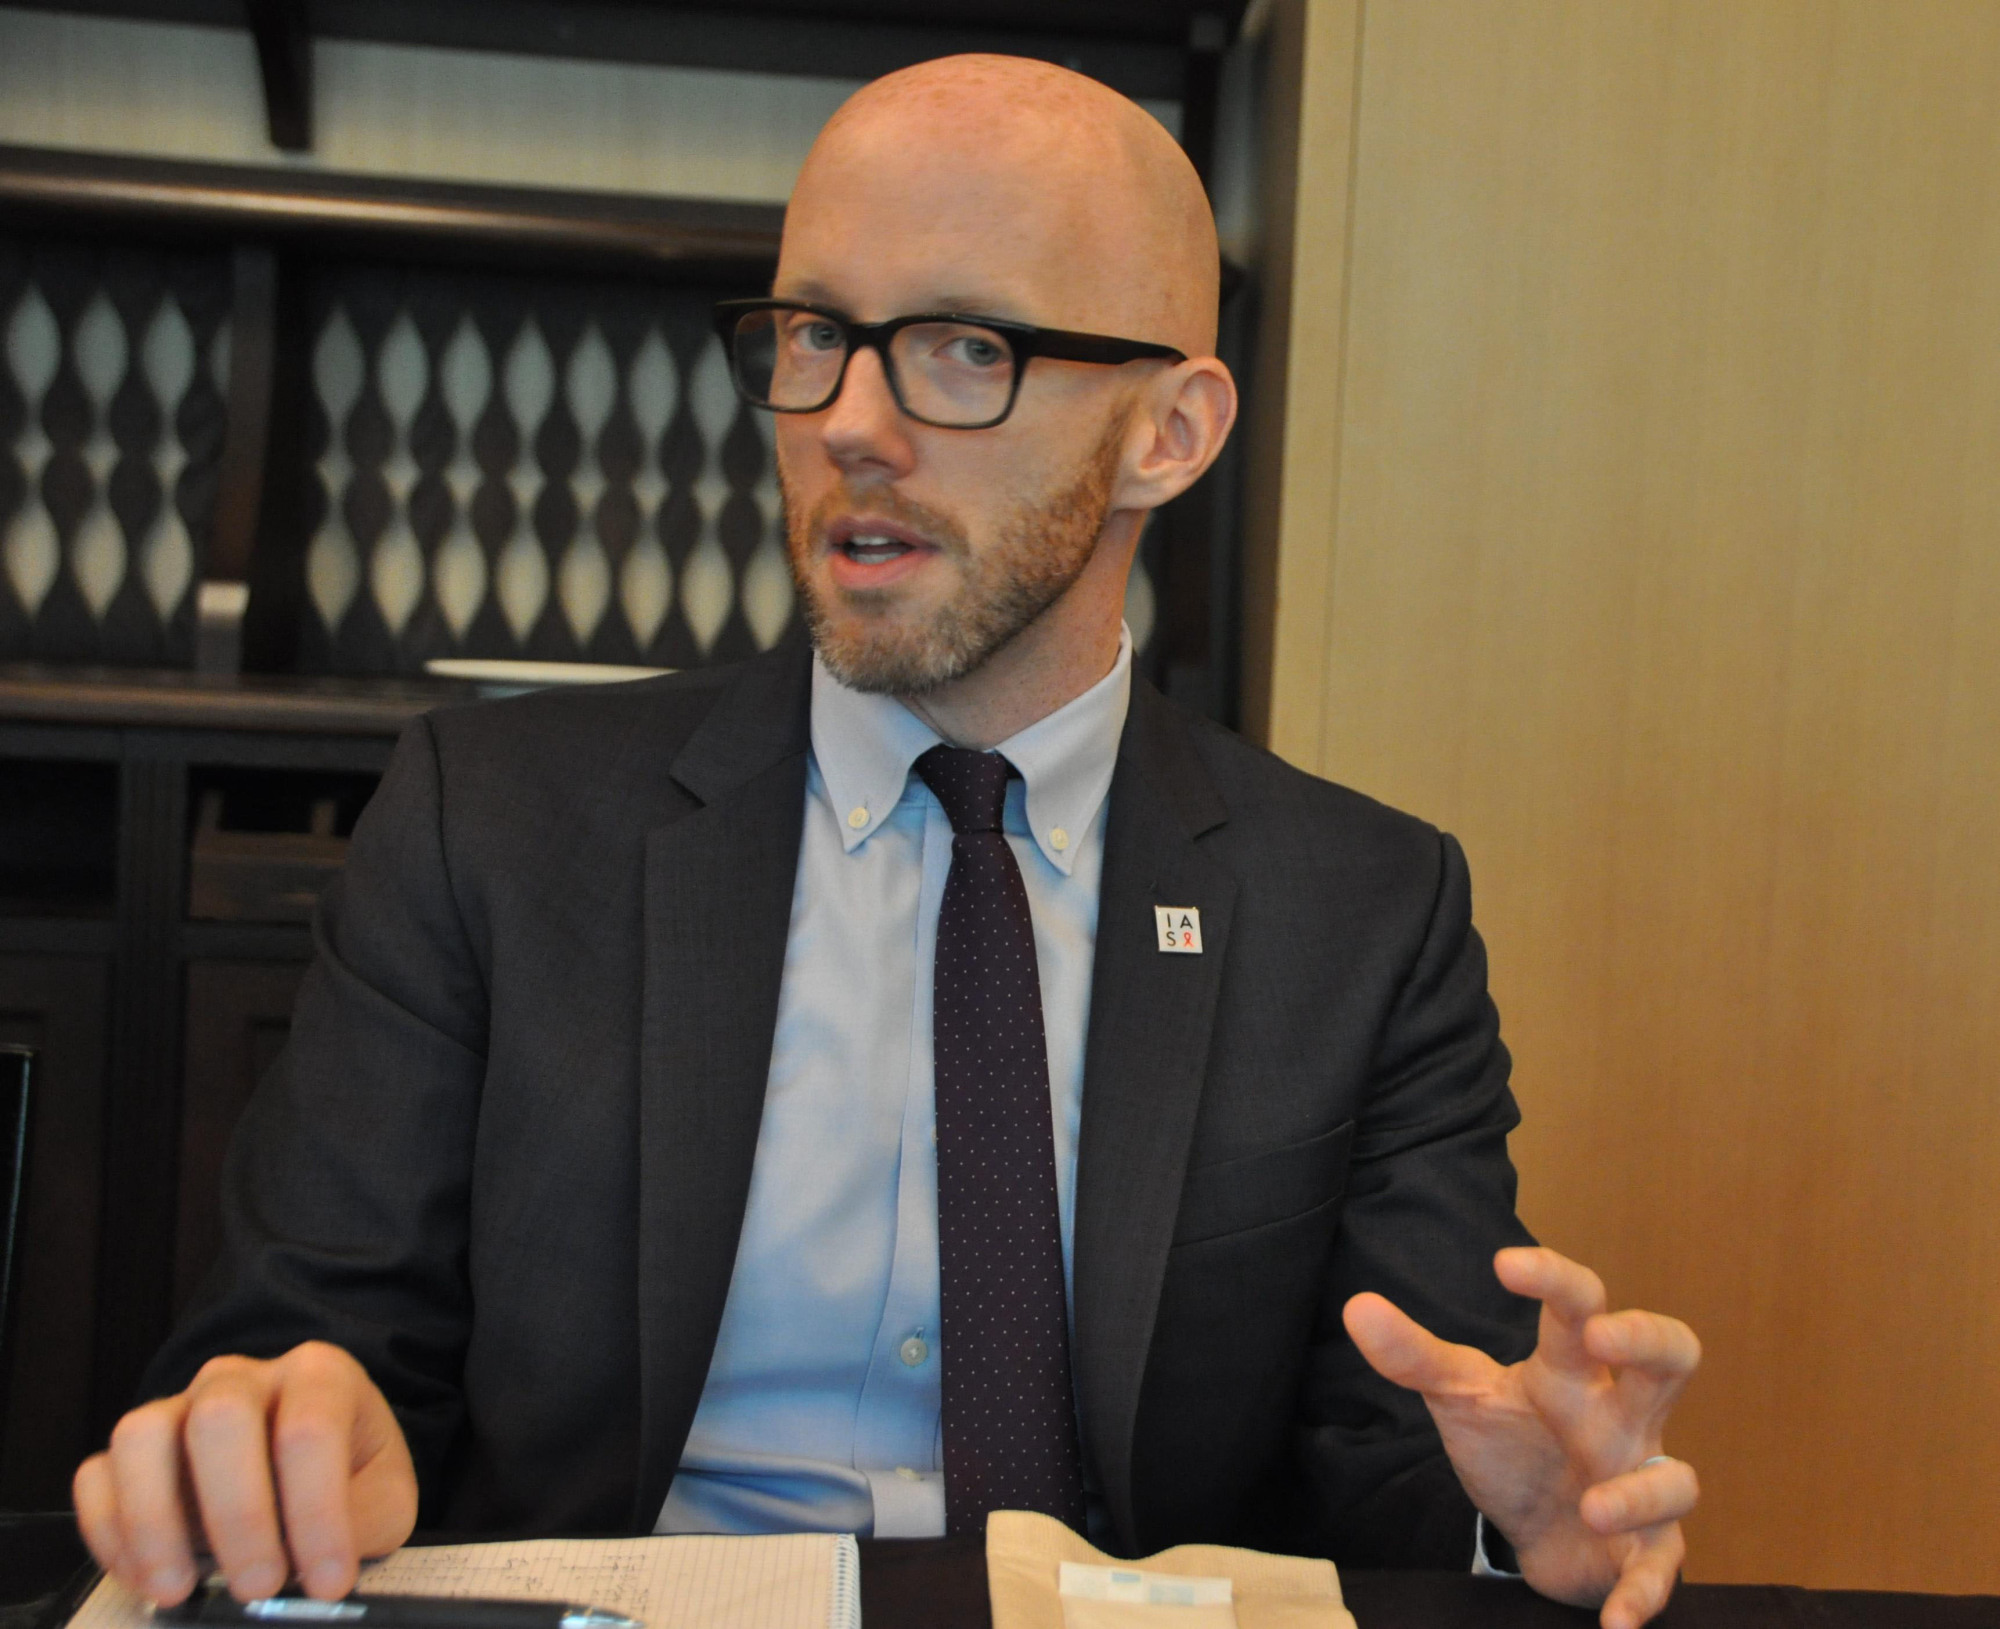 Owen Ryan, executive director of the International AIDS Society, speaks during a group interview in Tokyo on April 25. | KYODO